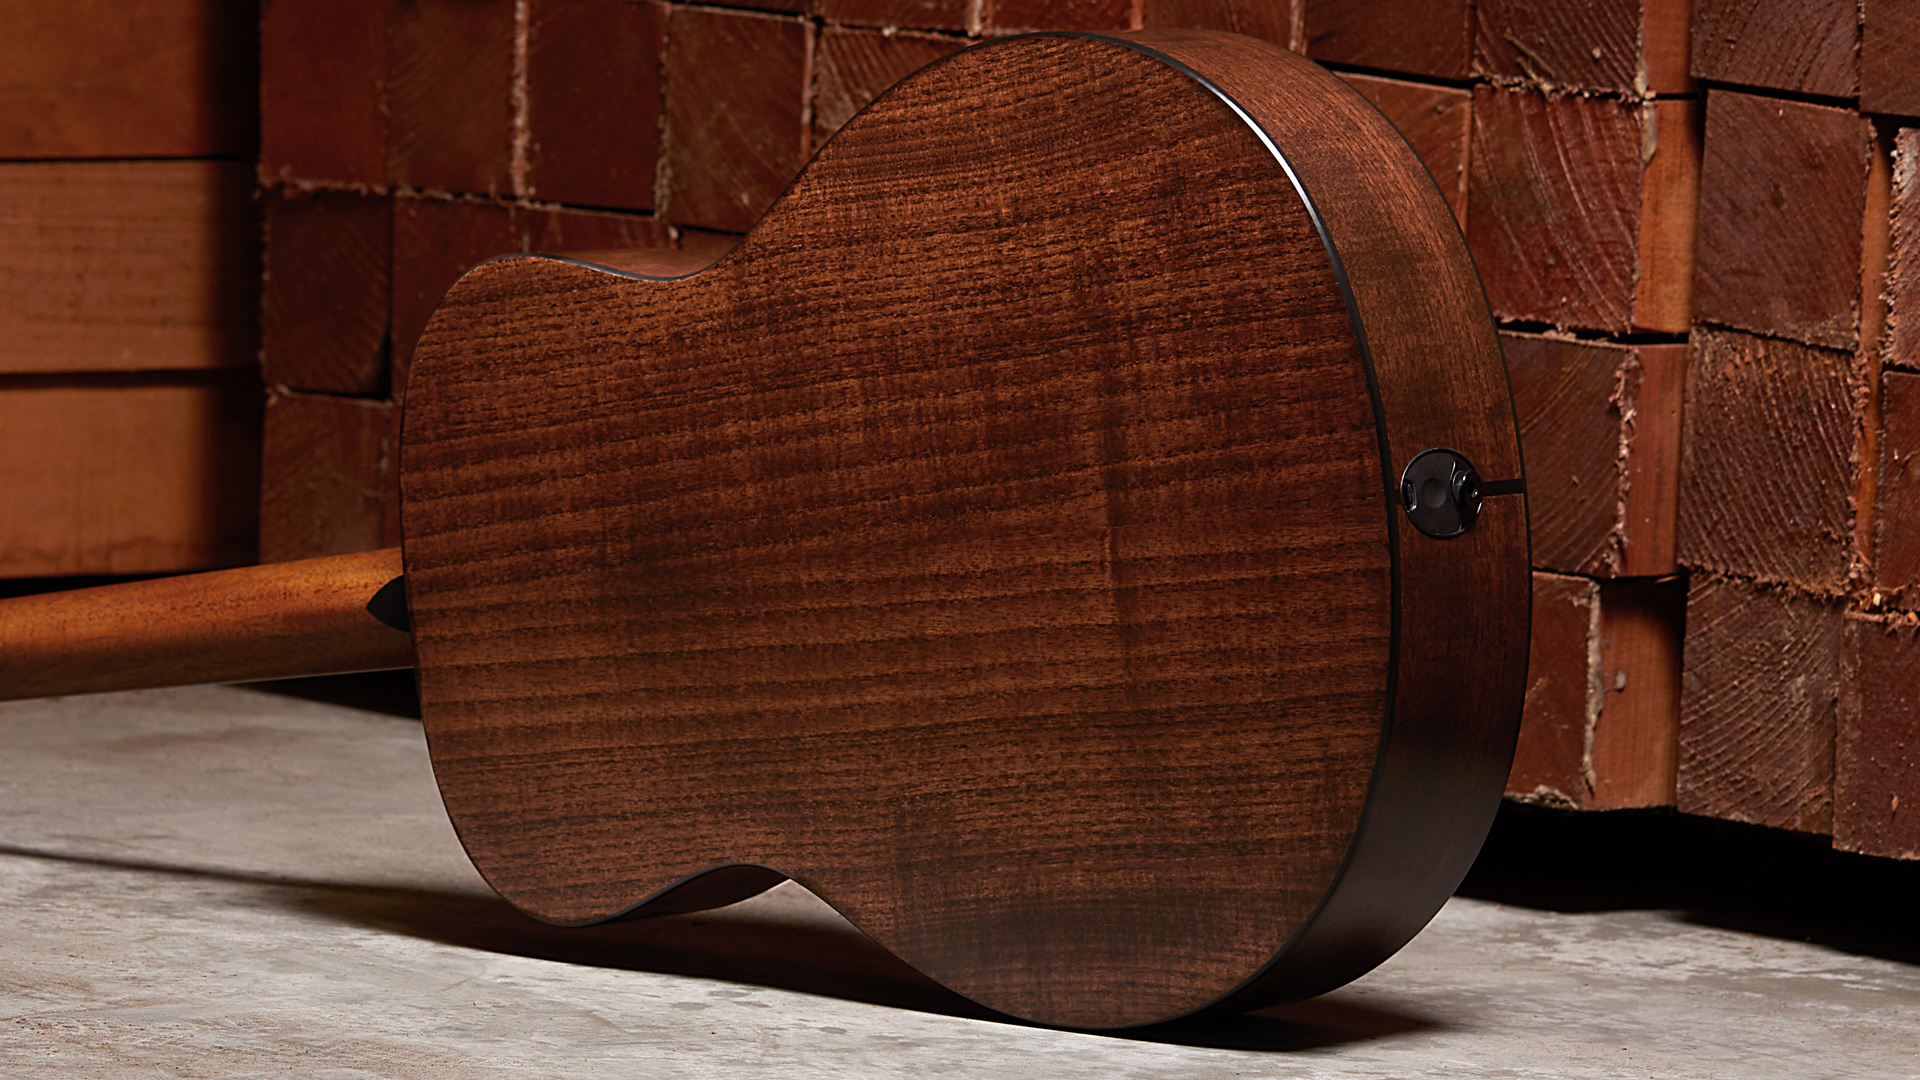 taylor acoustic guitar with back facing camera to show grain of wood